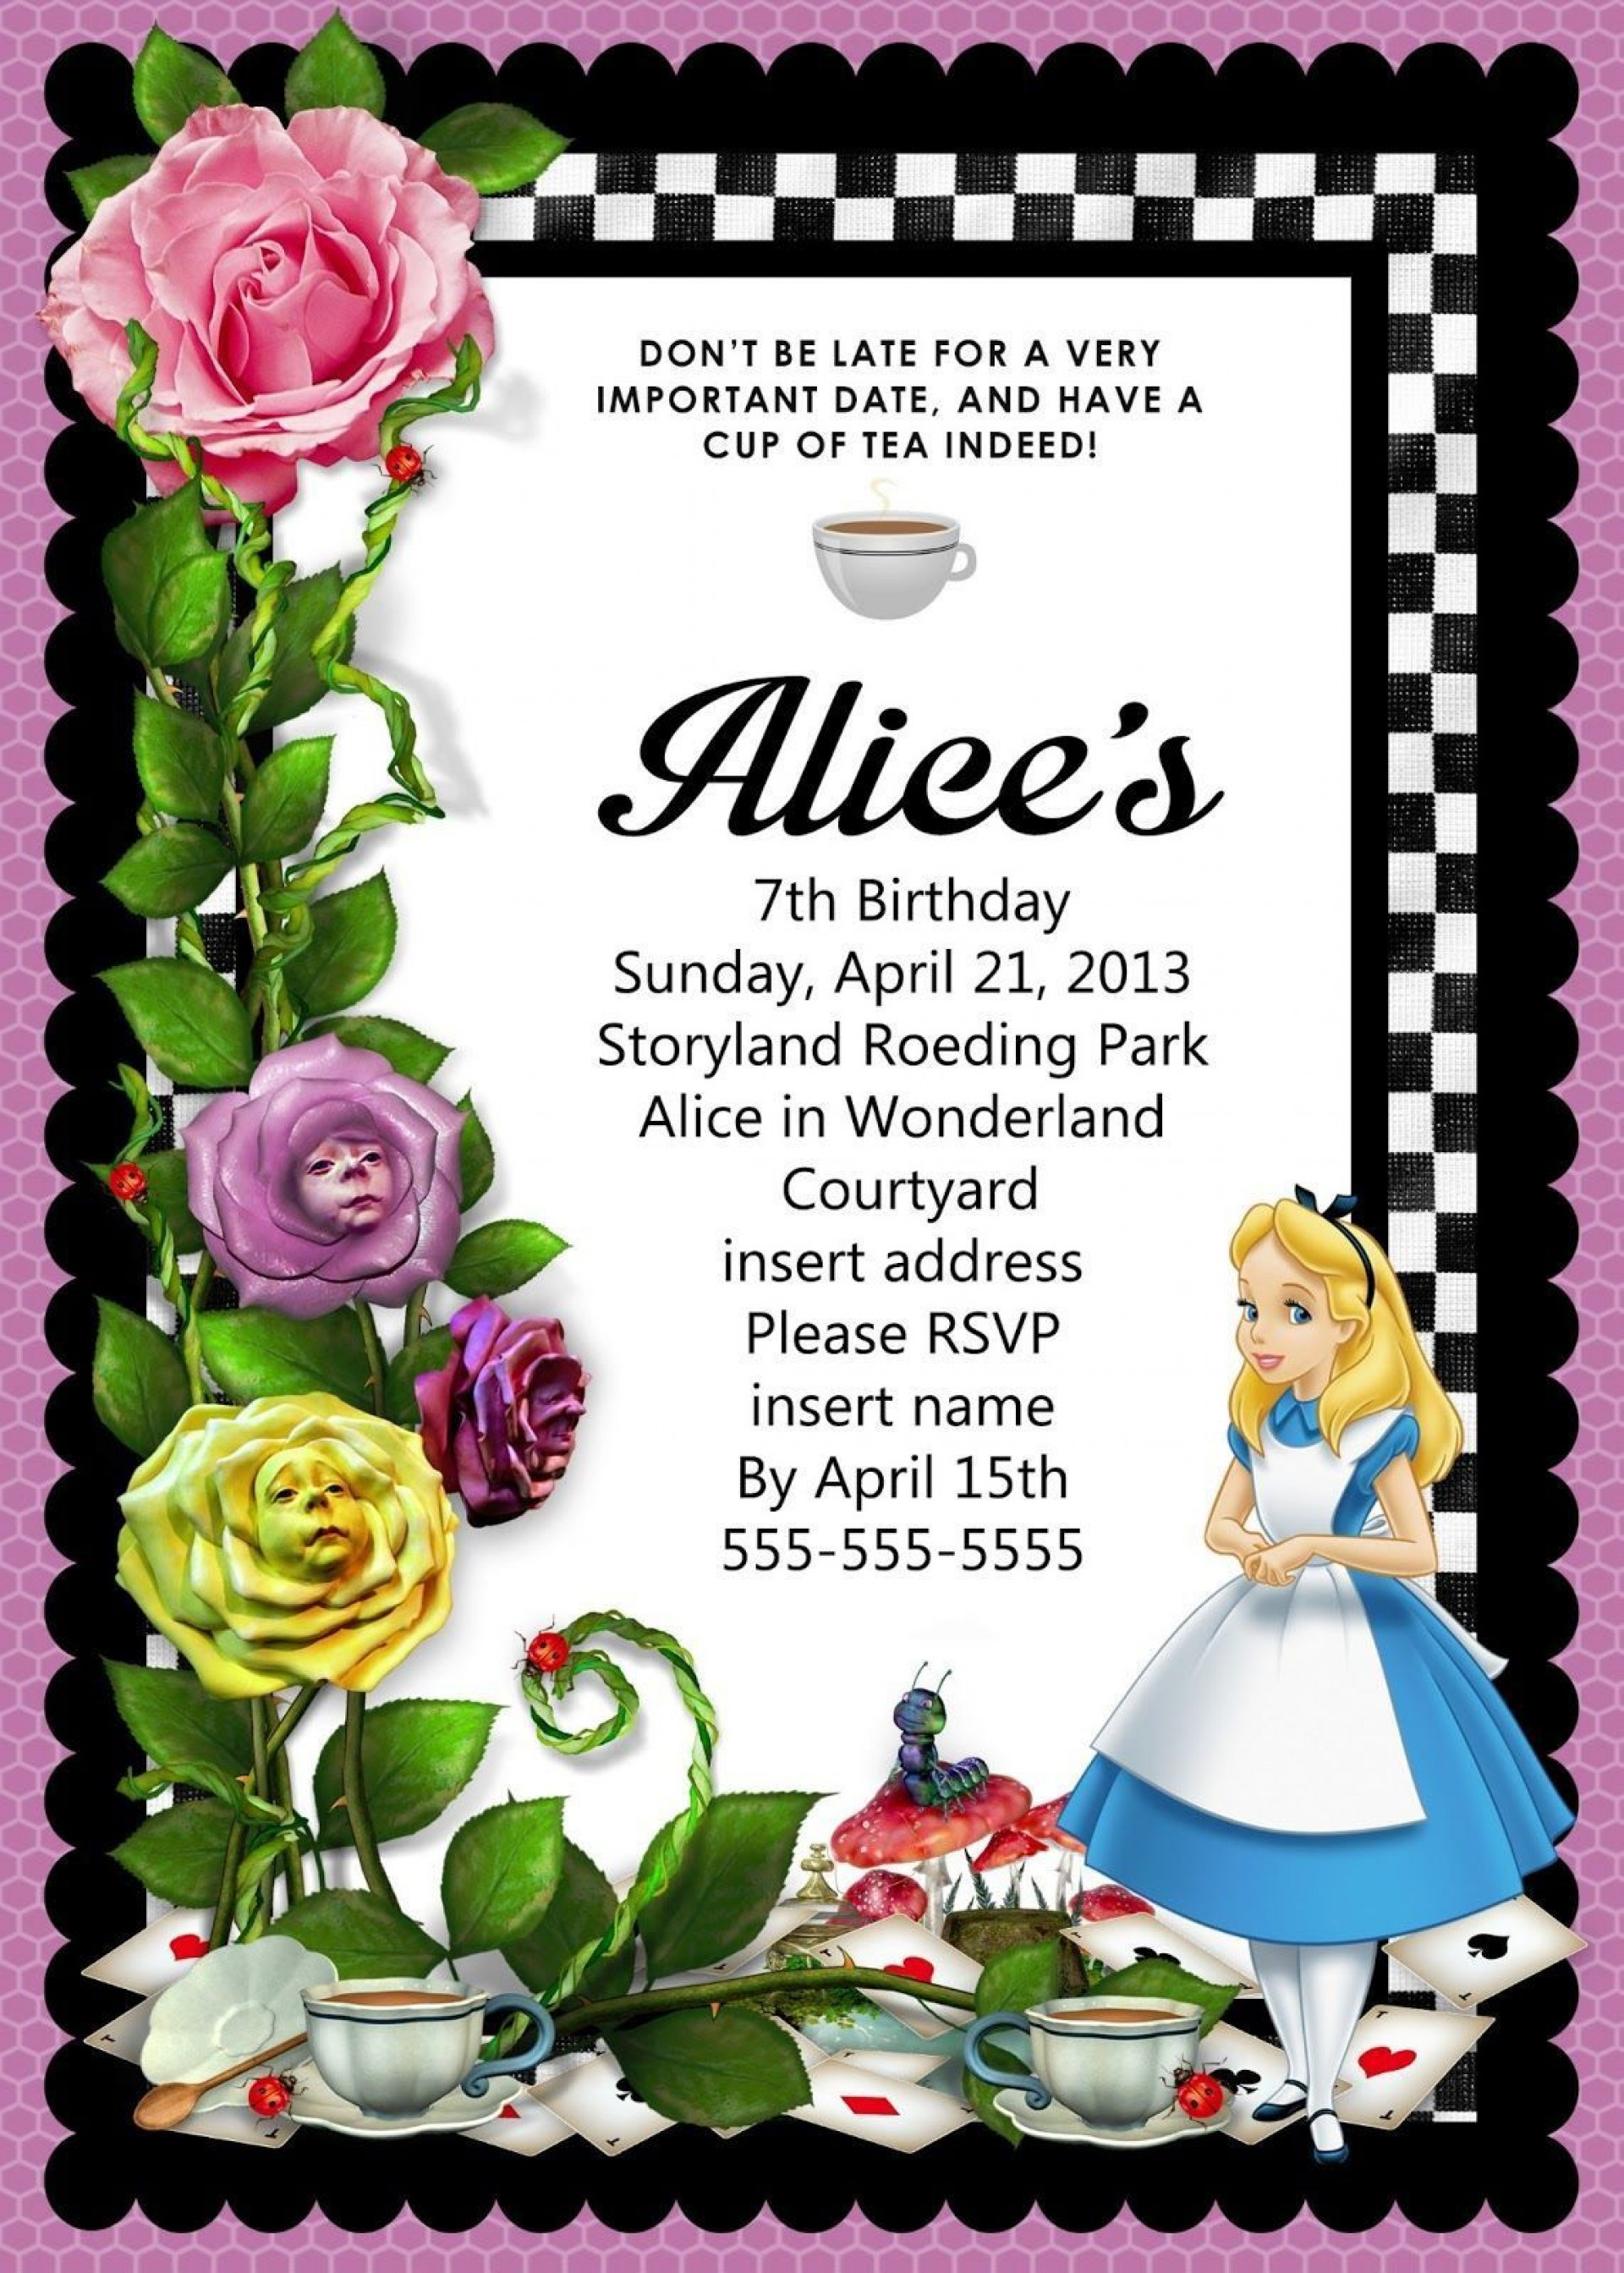 009 Fantastic Alice In Wonderland Invitation Template High Definition  Templates Birthday Free Wedding Wording Download1920